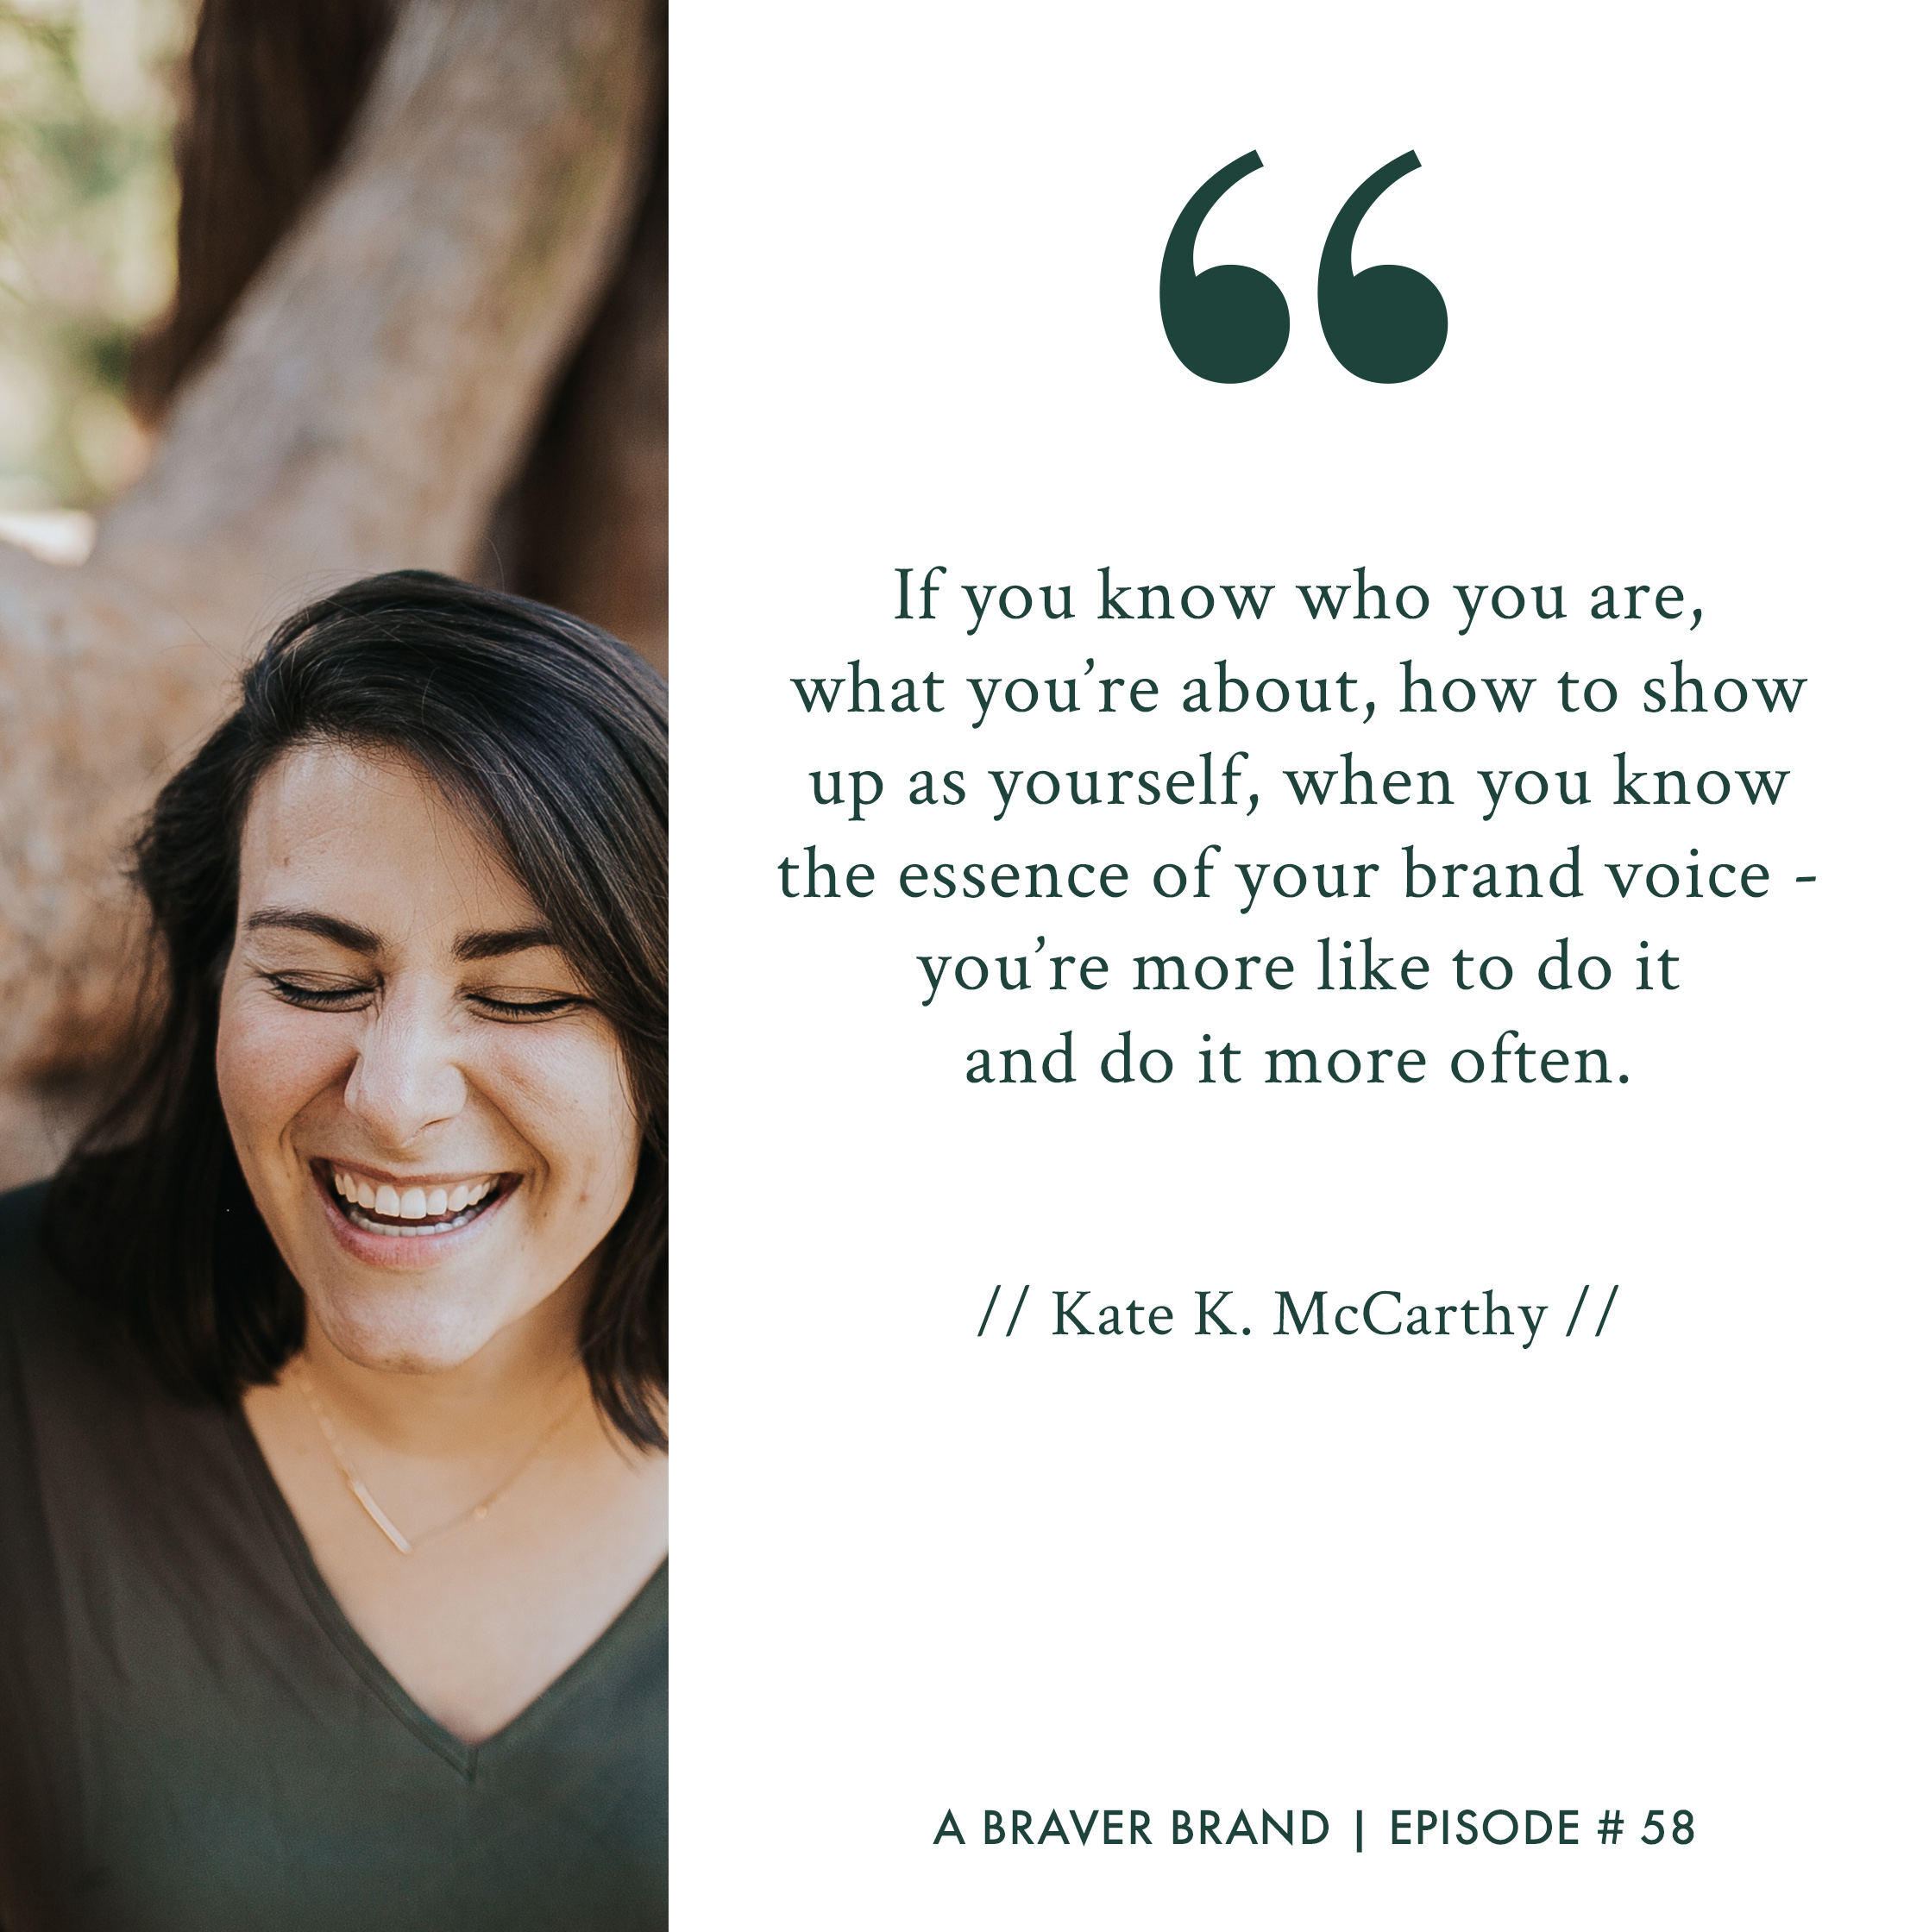 Kate K. McCarthy on your burning questions and where to start | A Braver Brand with Kate K. McCarthy